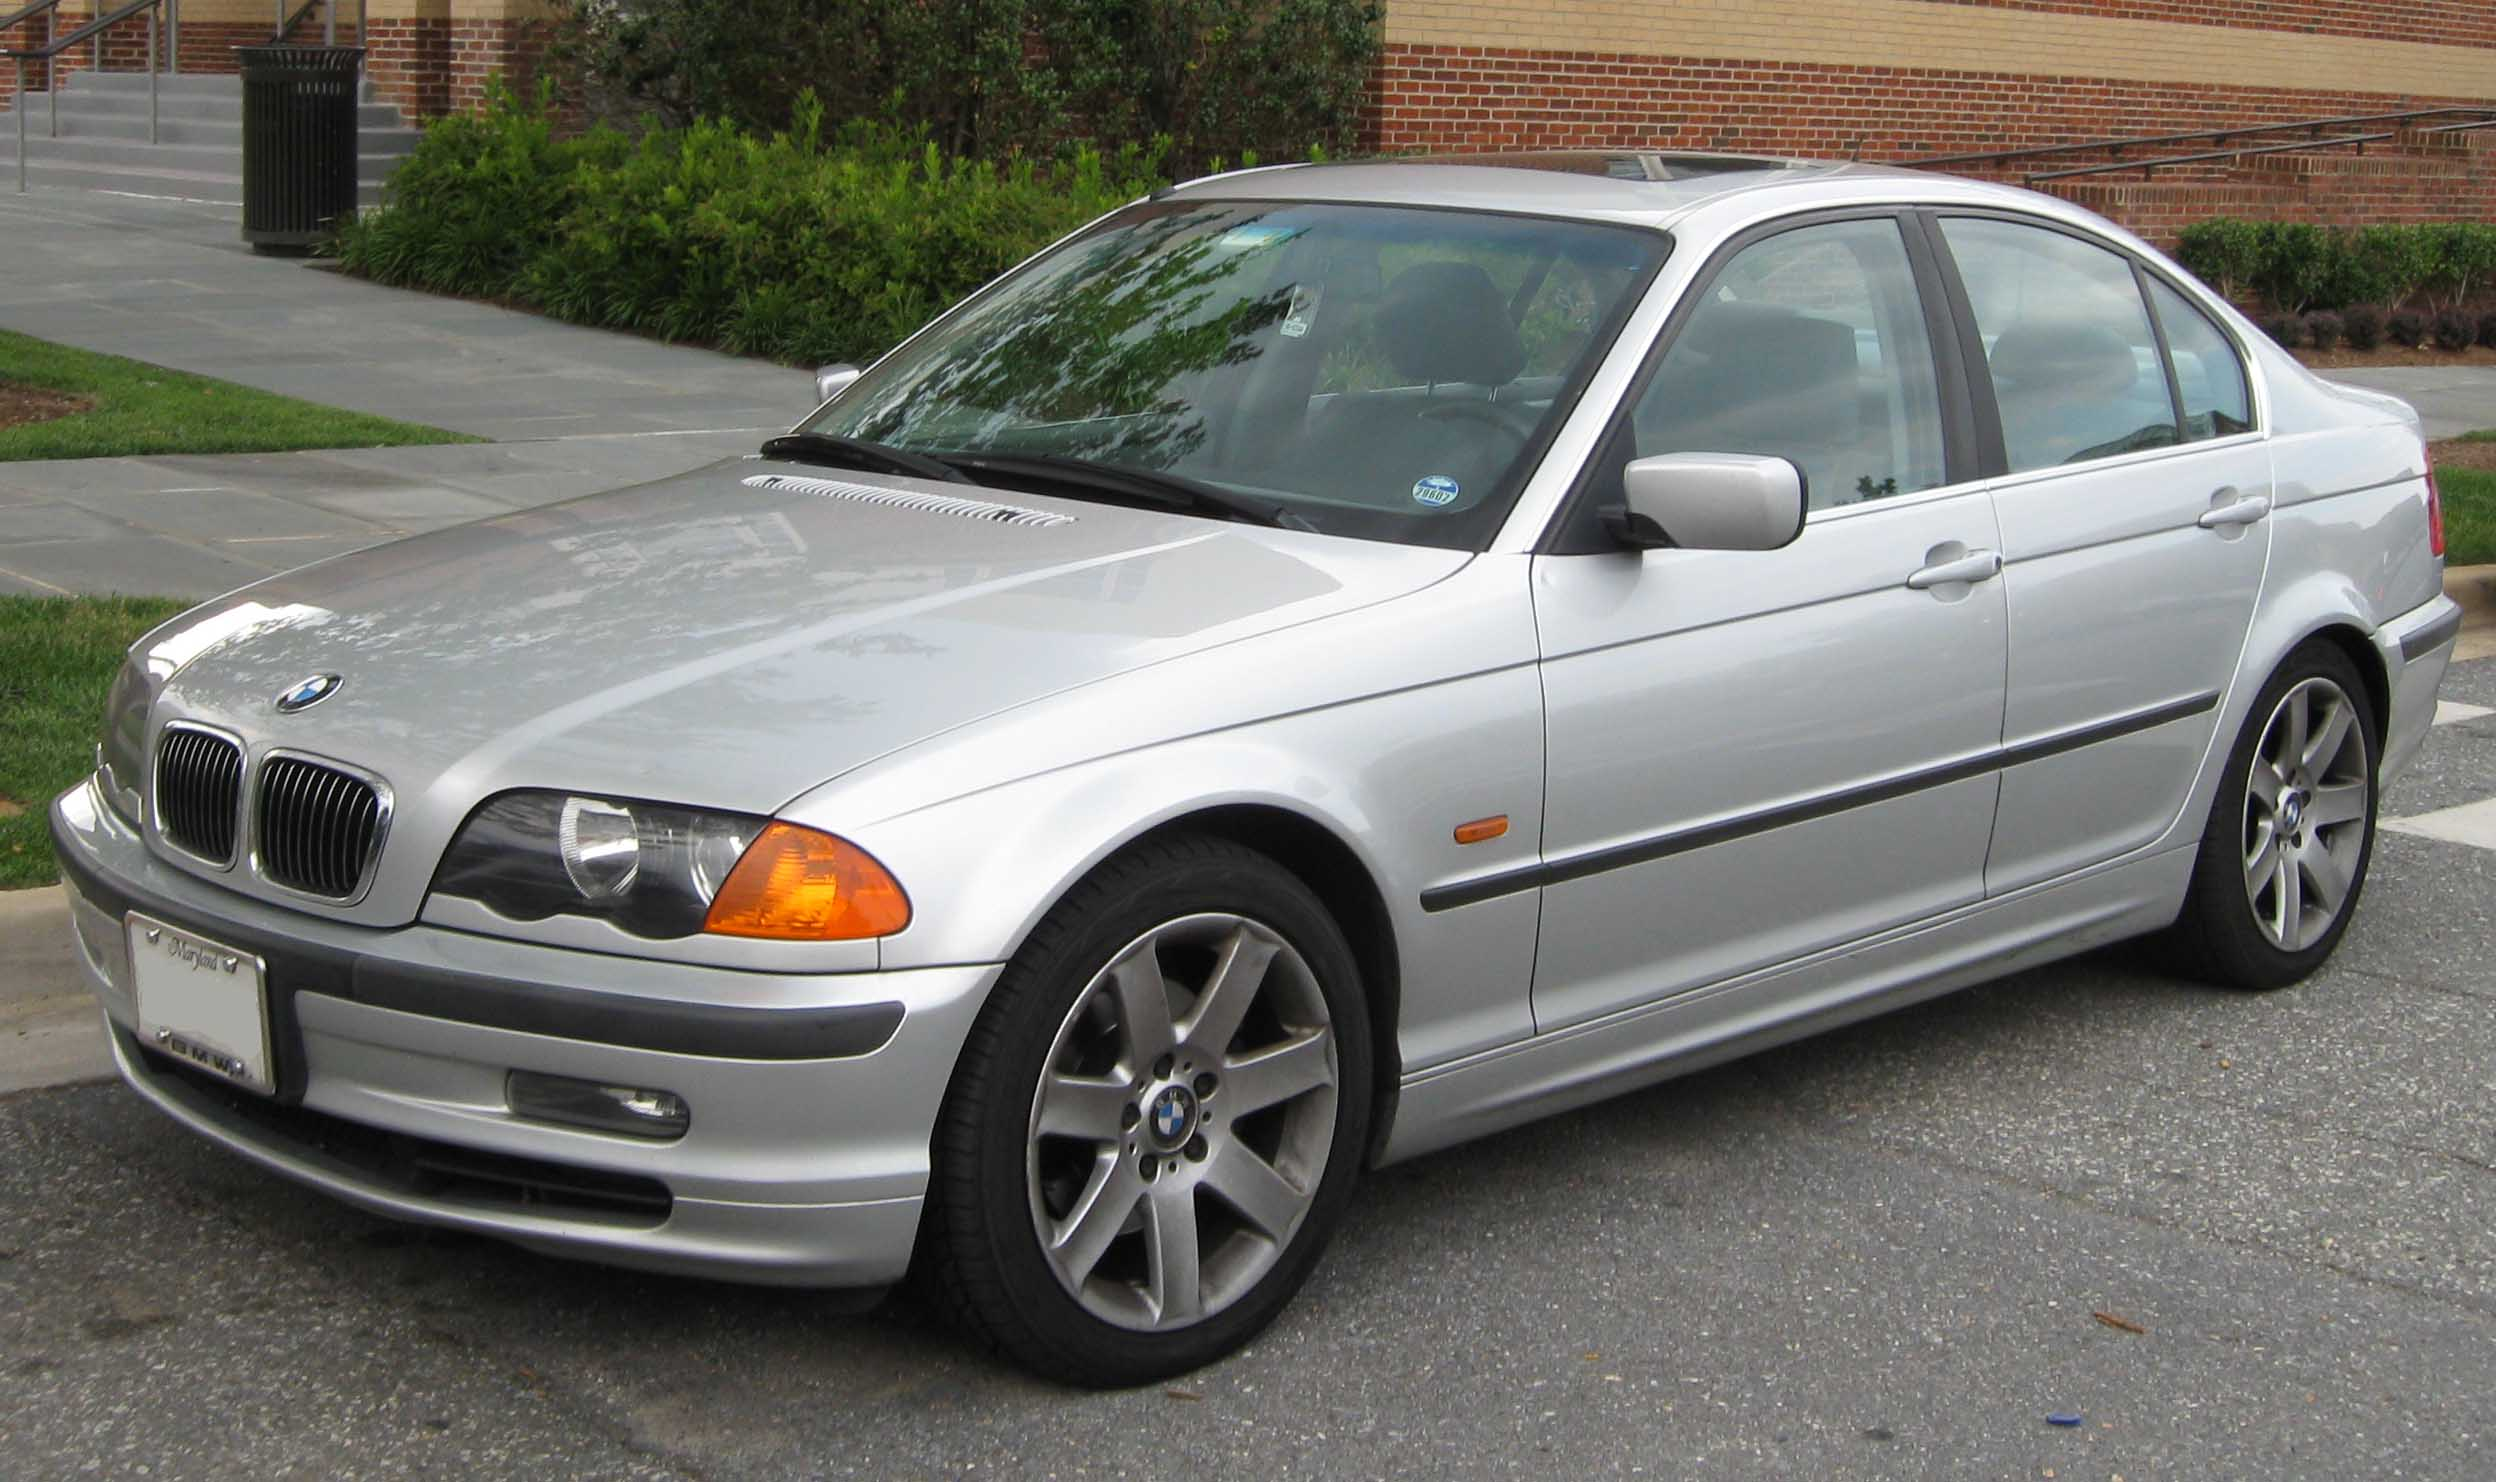 2001 Bmw 3 Series Image 6